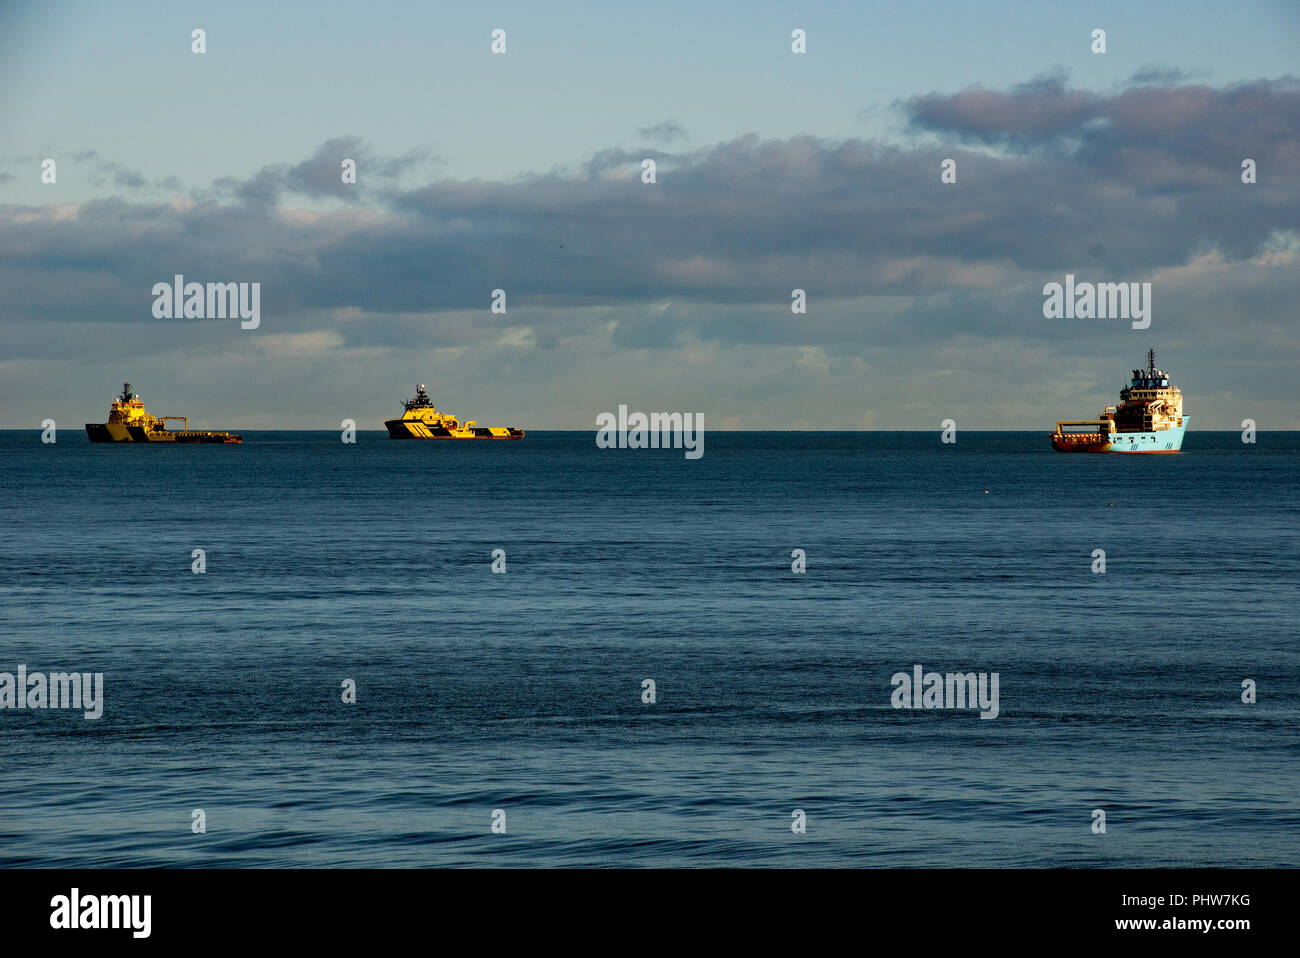 Oil rig support vessels at anchor in the North Sea off the North beech of Aberdeen Scotland - Stock Image